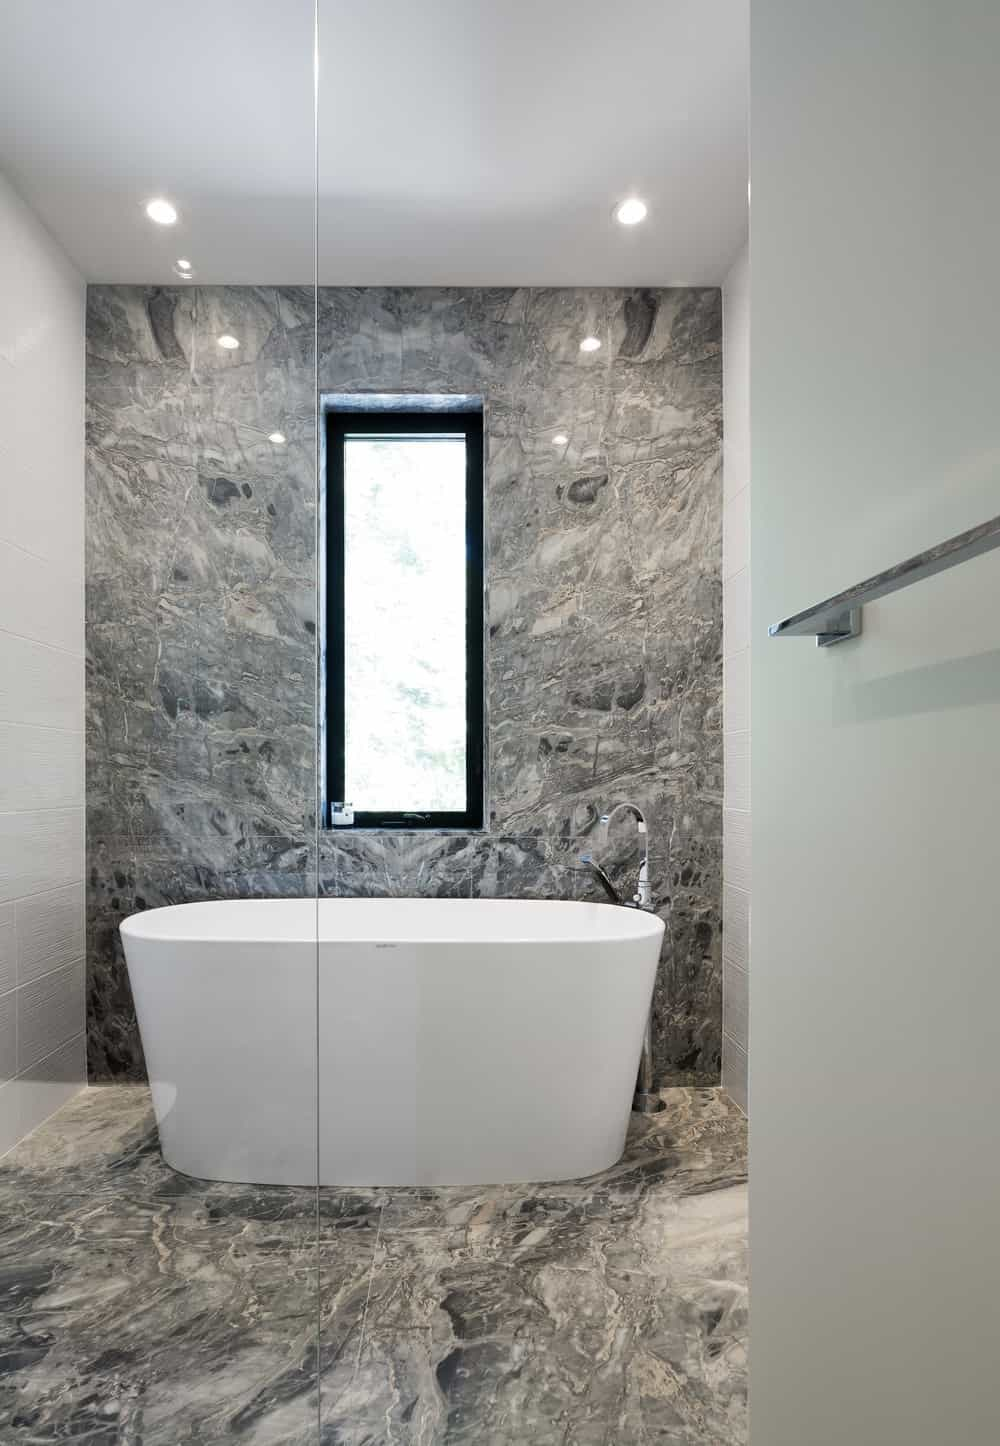 Modern bathroom with stylish flooring and walls along with freestanding tub. Photo credit: Steve Montpetit